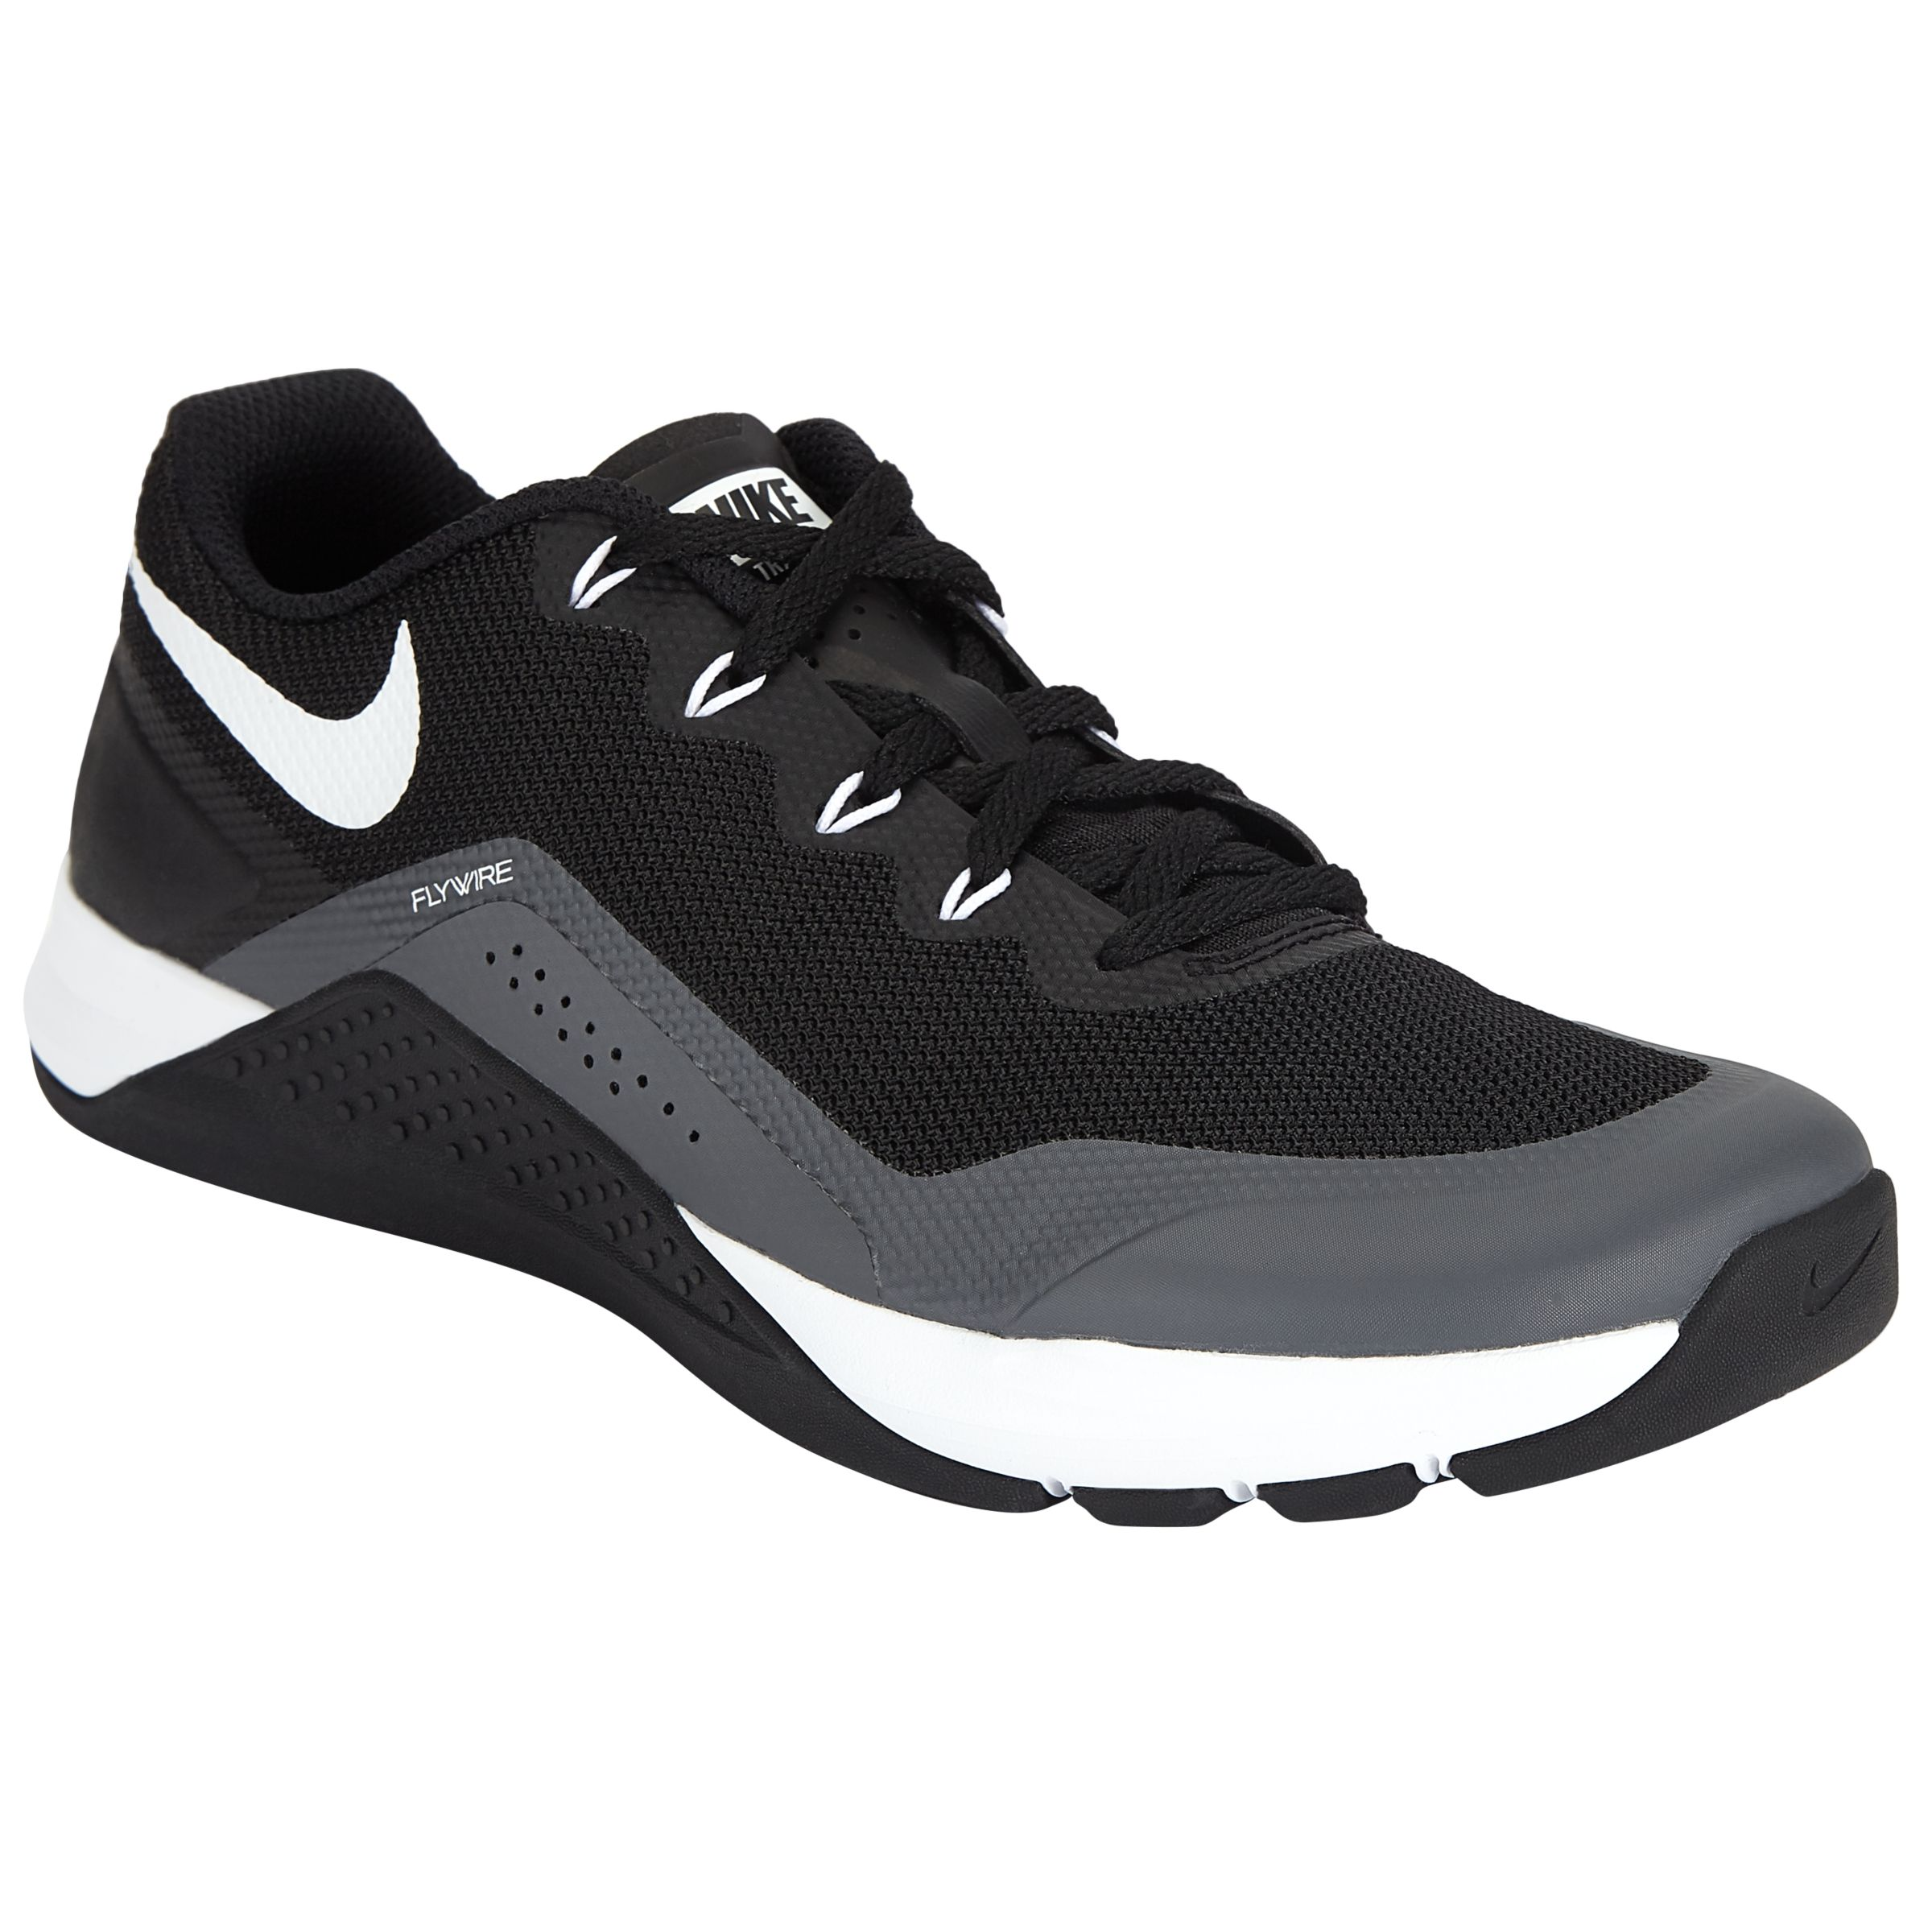 01592a4d980e2 Nike Metcon Repper DSX Women's Cross Trainers, Black/White/Grey at ...